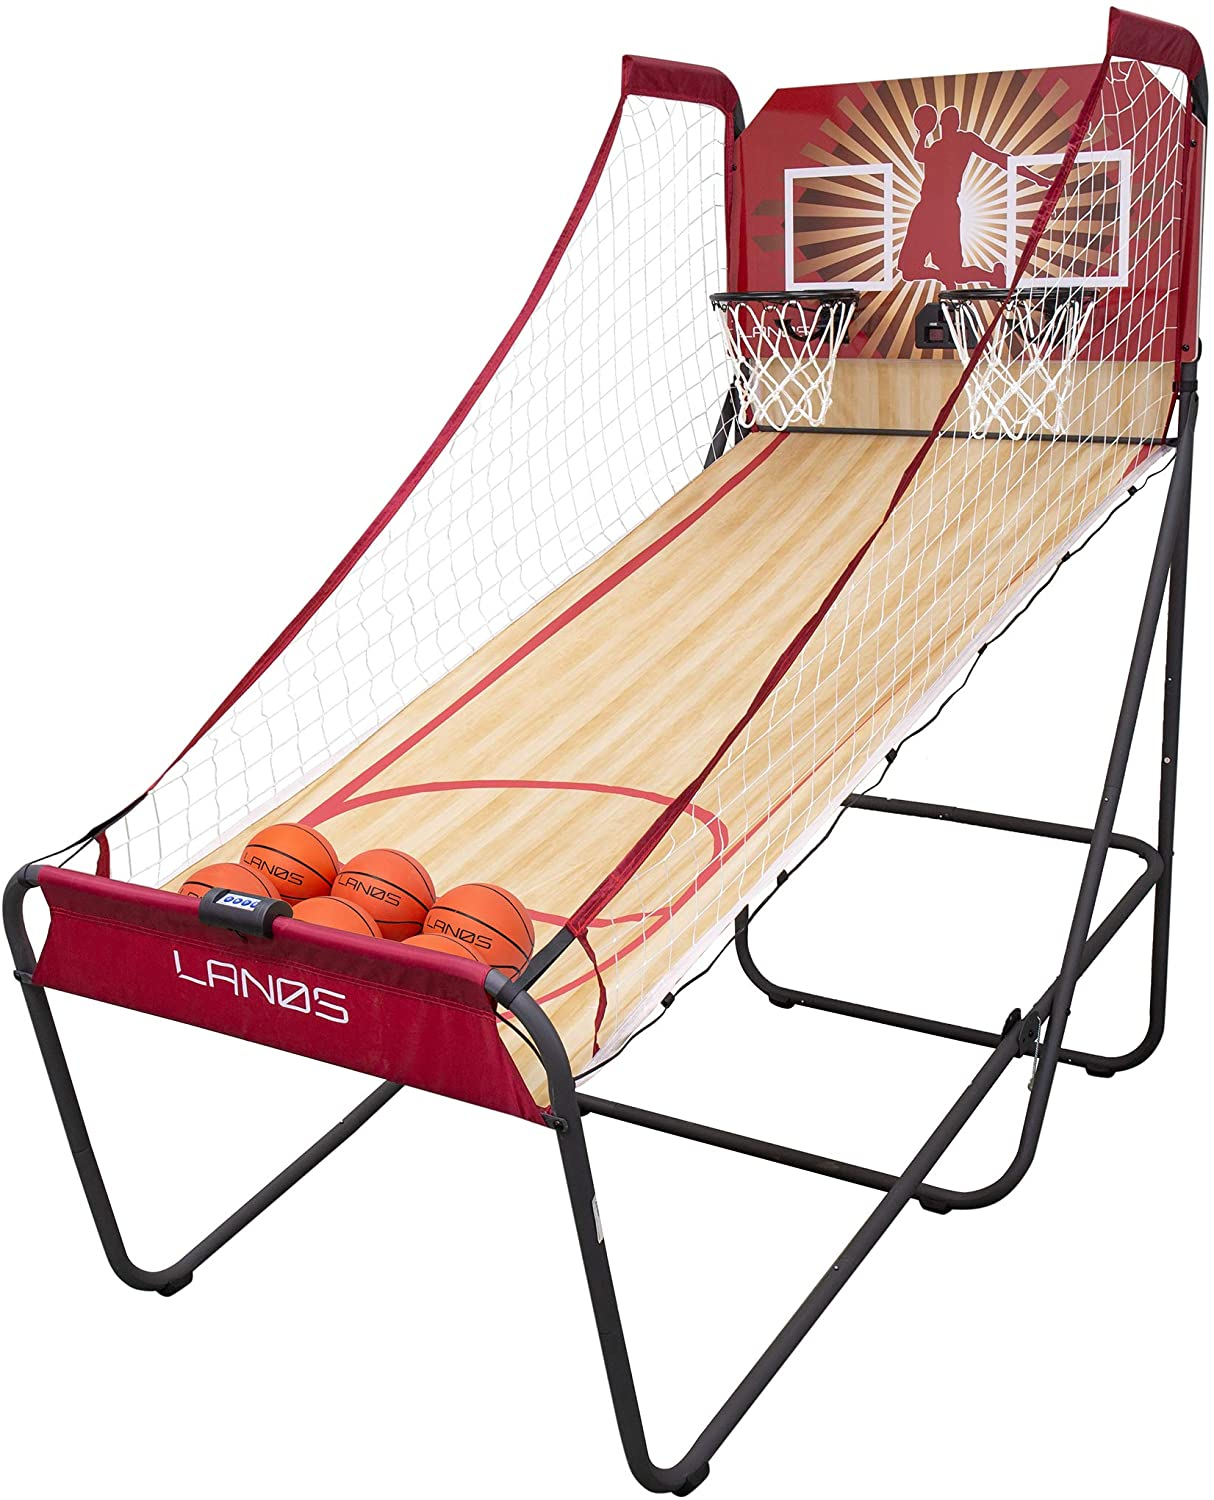 Lanos Basketball Arcade Game, Double Electronic Hoop Shot, 2 Player or 1 Player, with 6 Basketballs - Indoor Basketball with 8 Game Modes - Premium Arcade Games for Home